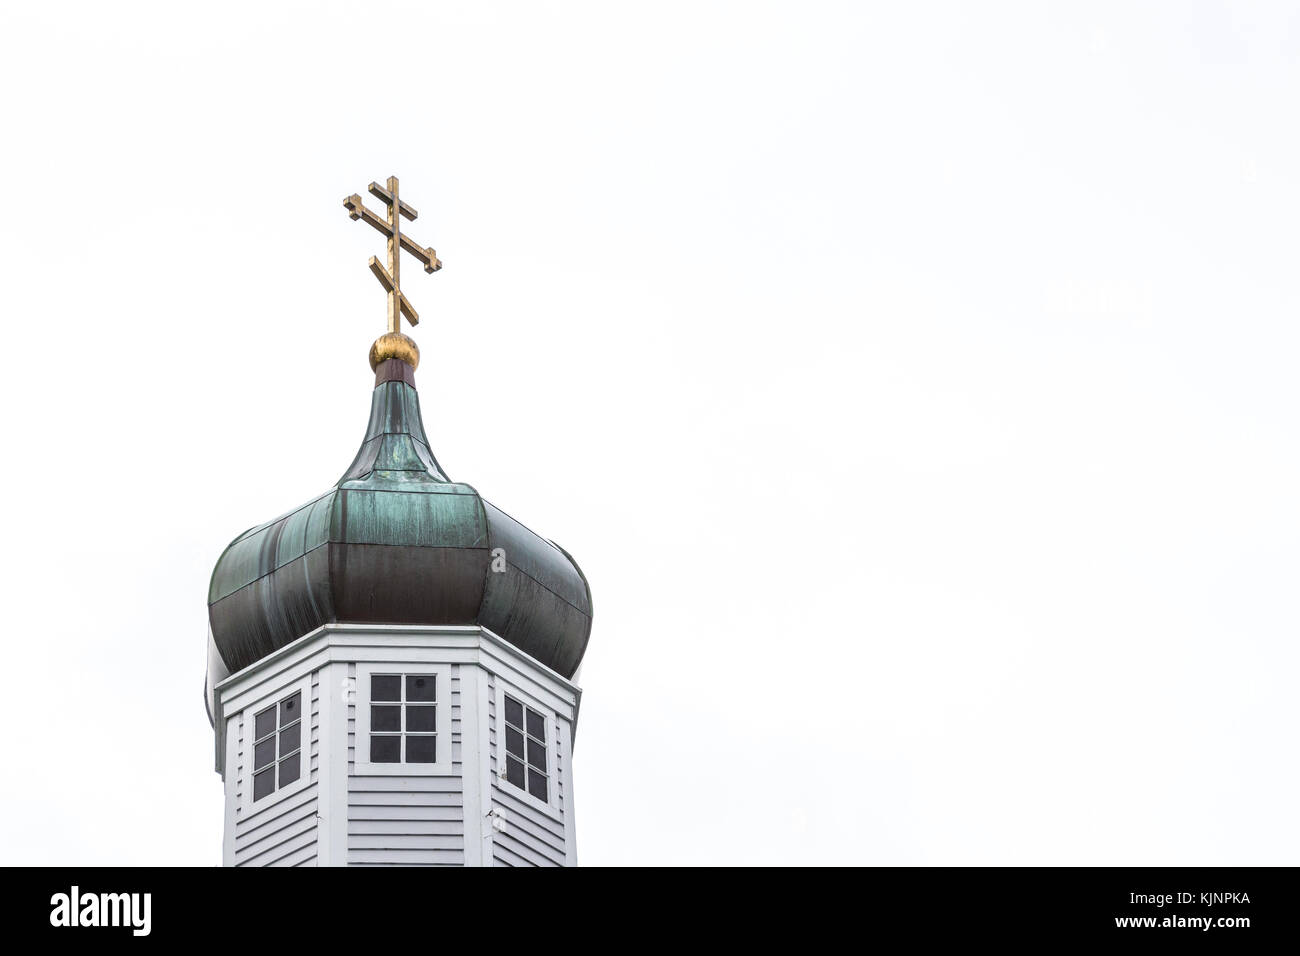 Sitka, Alaska, USA - August 20, 2017: The Cathedral of St Michael Archangel placed at Lincoln and Matsoutoff Streets in Sitka, Alaska. Stock Photo